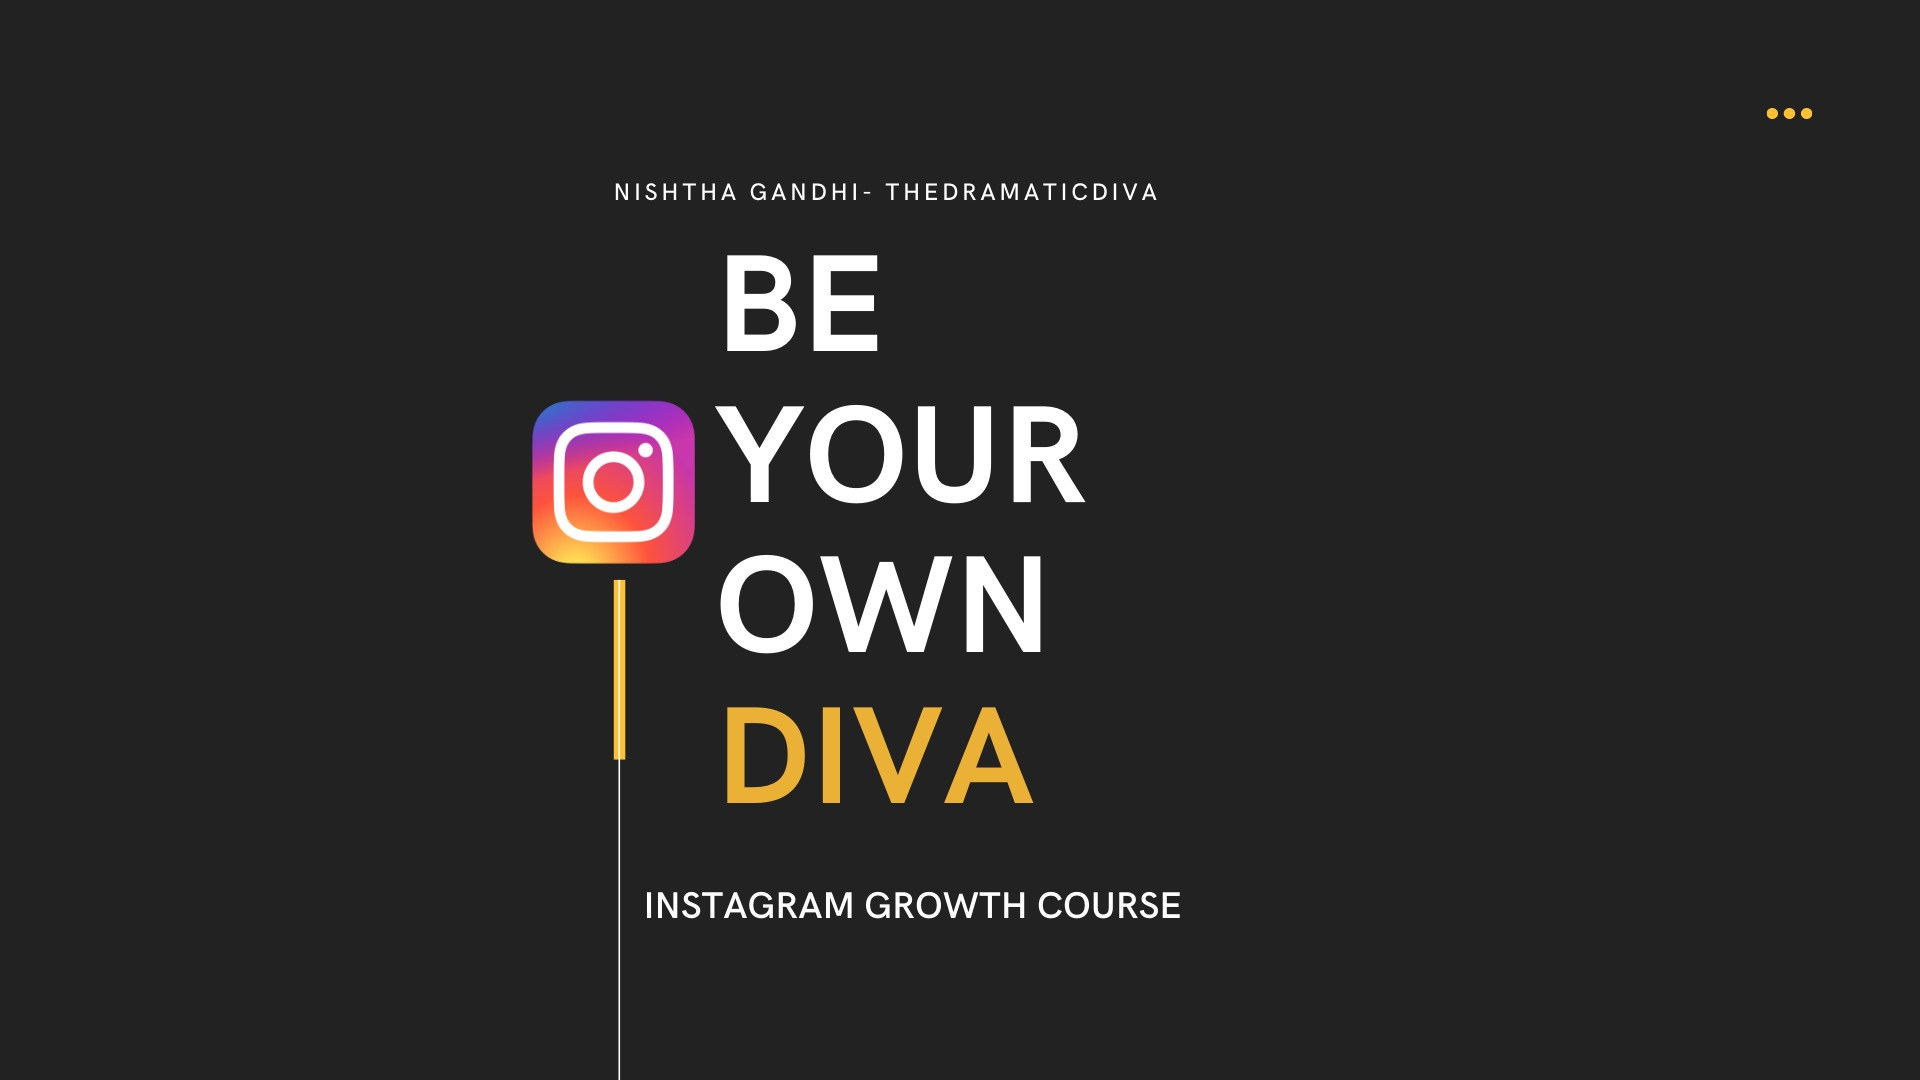 Be Your Own Diva Academy image